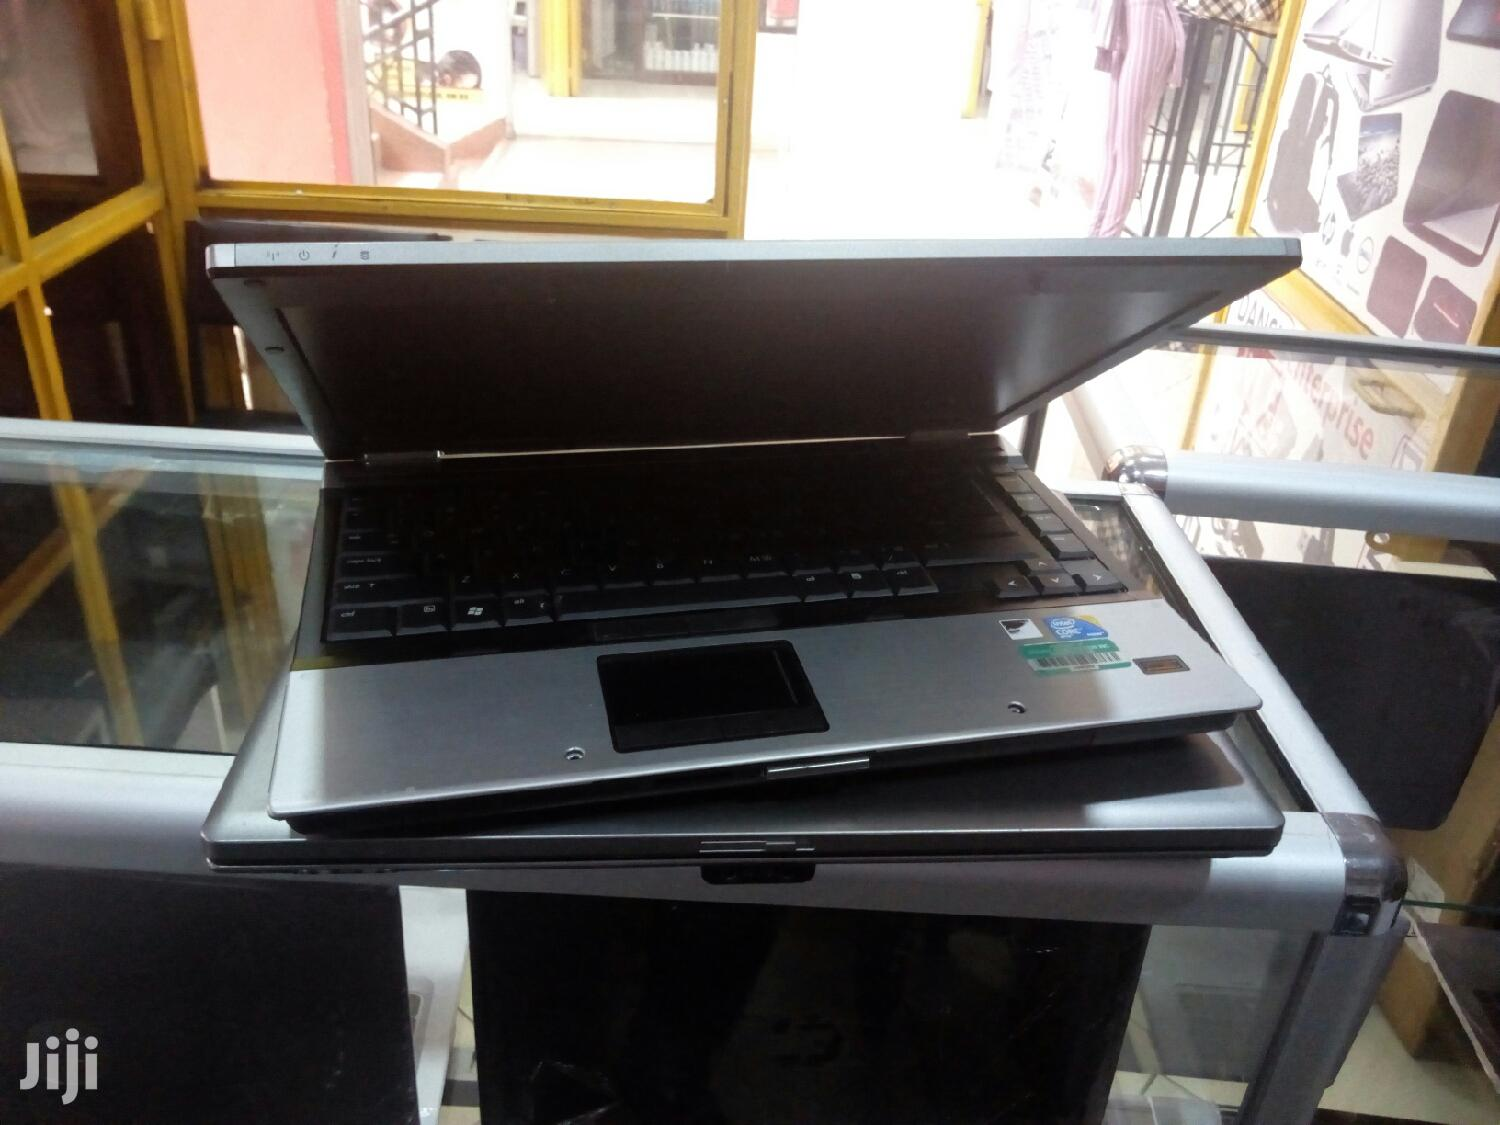 Archive: Laptop HP Compaq 6720s 2GB 320GB